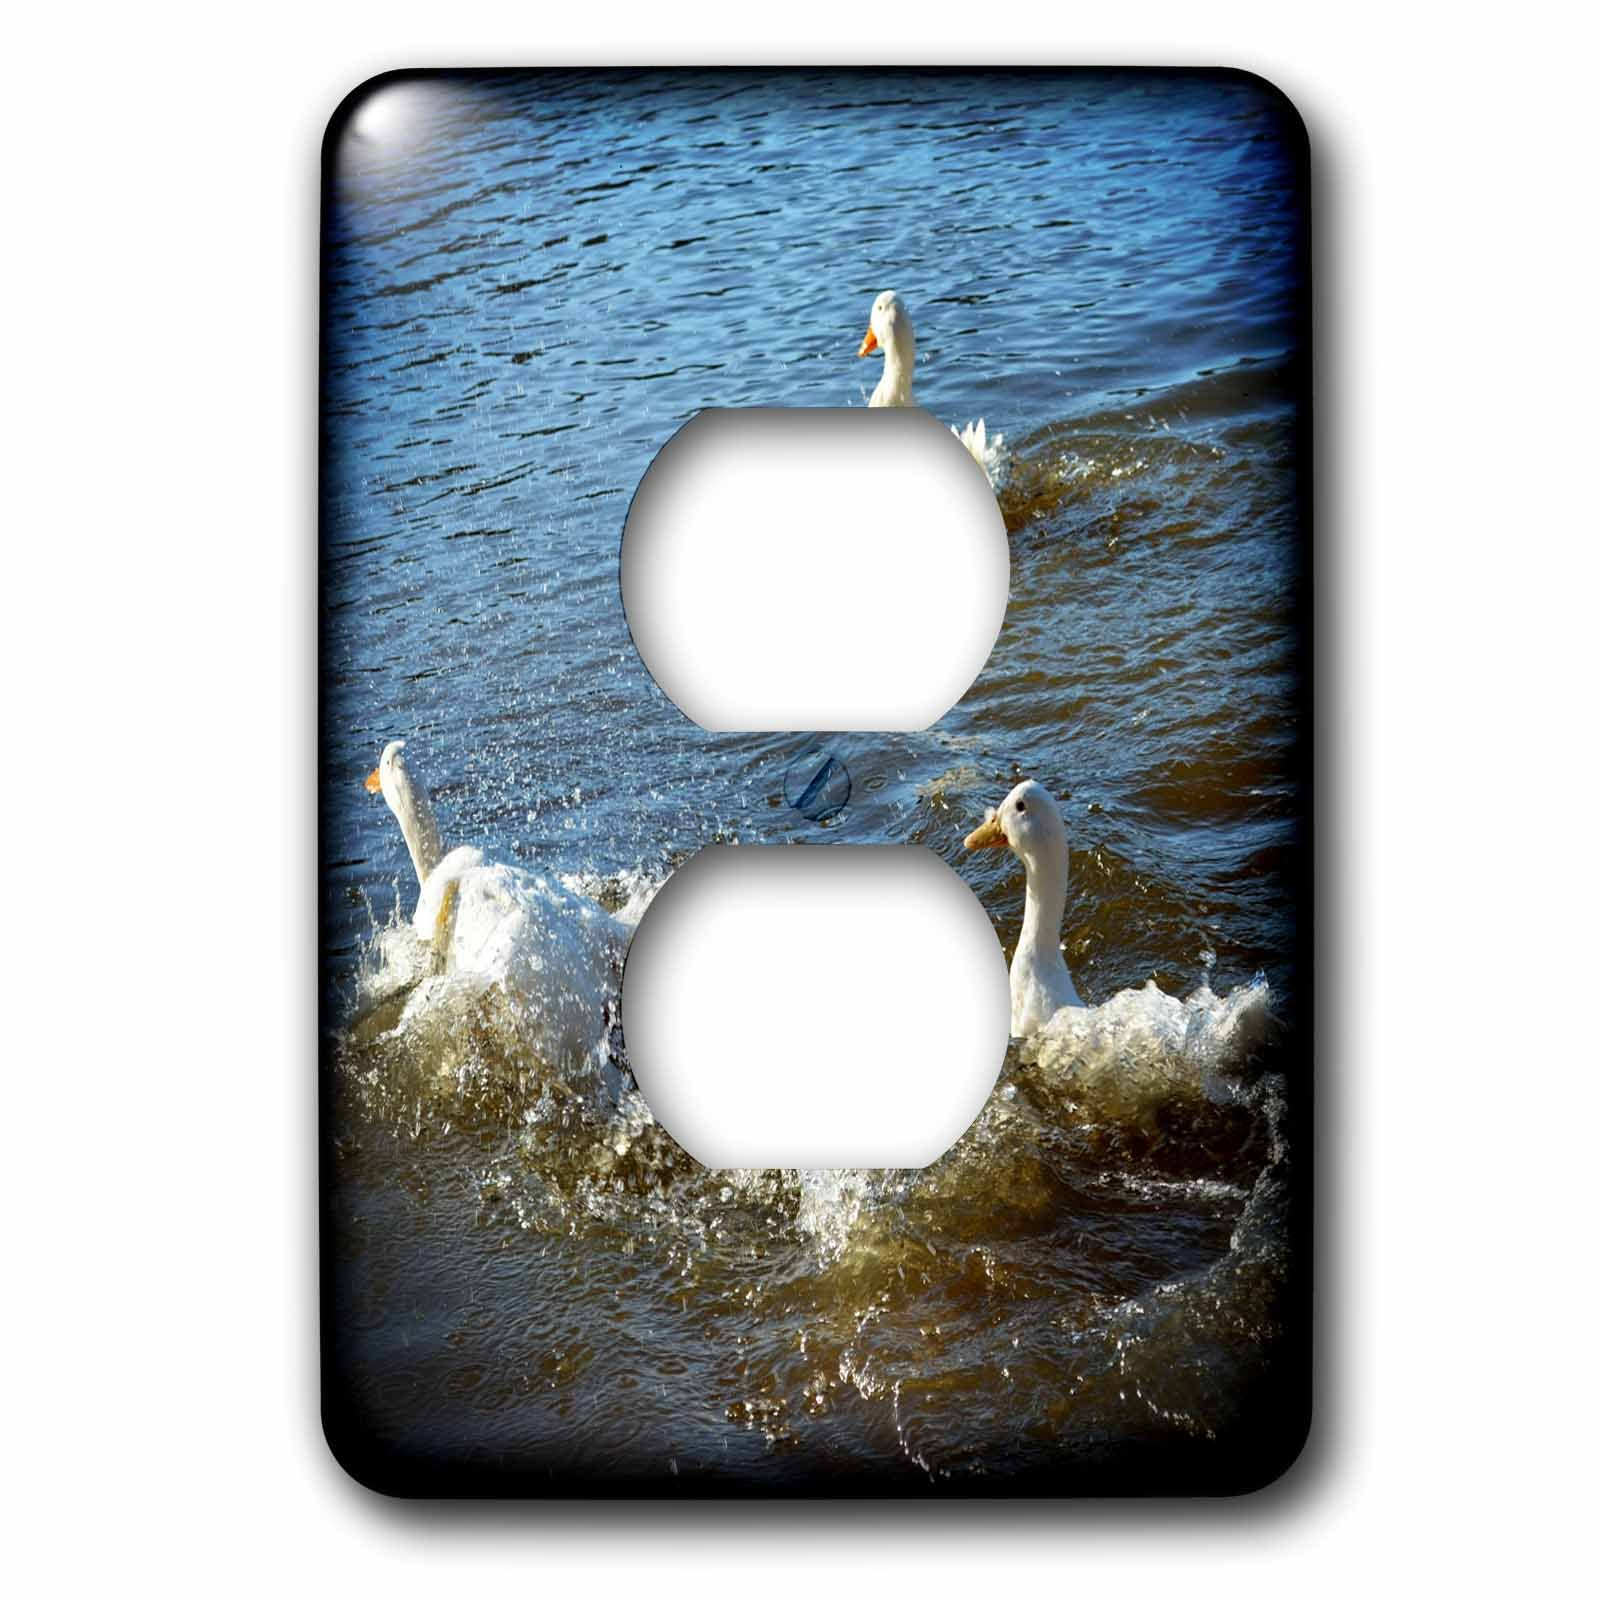 3dRose WhiteOaks Photography and Artwork - Ducks - Splish Splash is a group of ducks splashing around - Light Switch Covers - 2 plug outlet cover (lsp_265325_6)